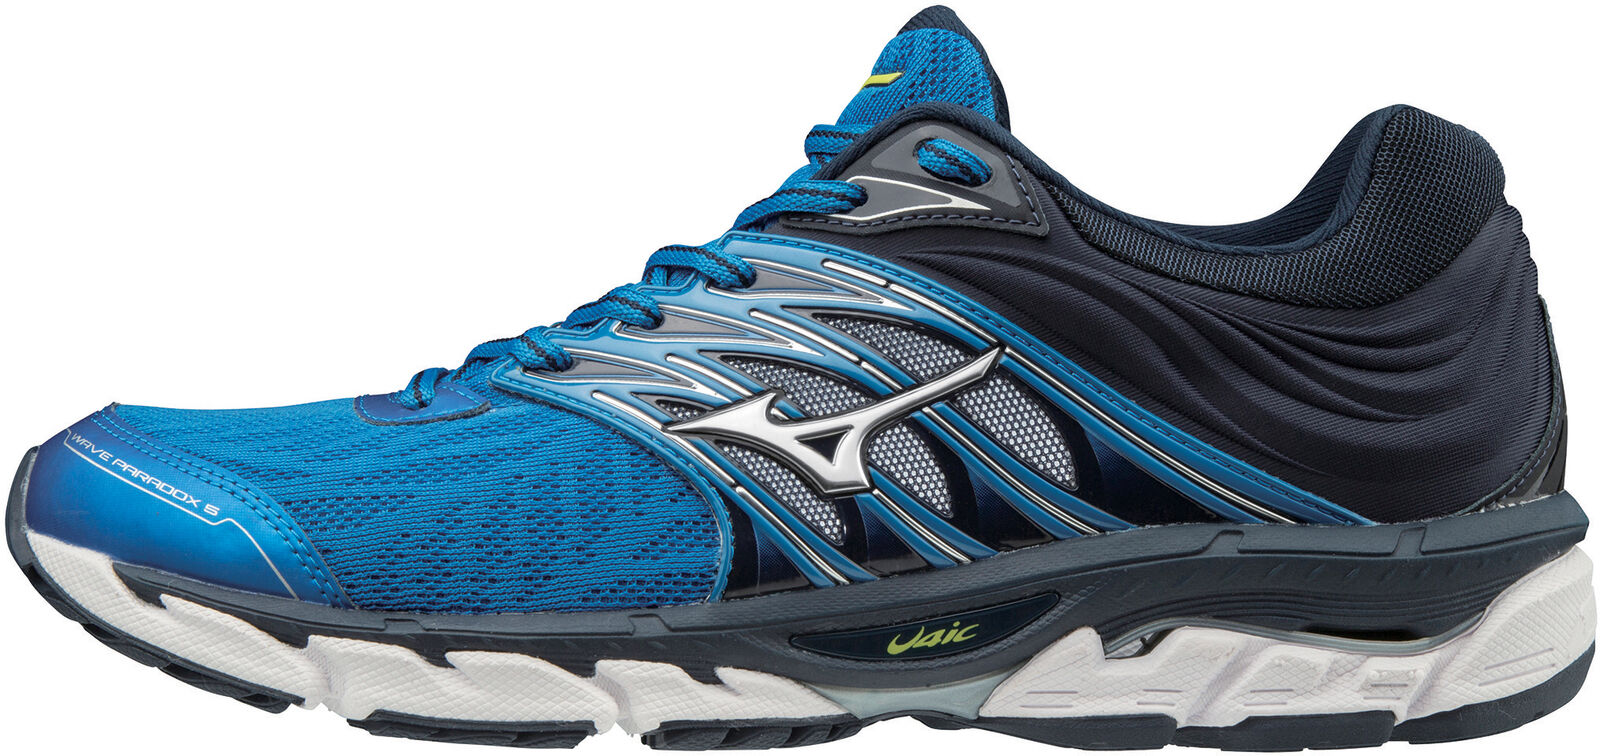 Mizuno Wave Paradox 5 Mens Running shoes - bluee